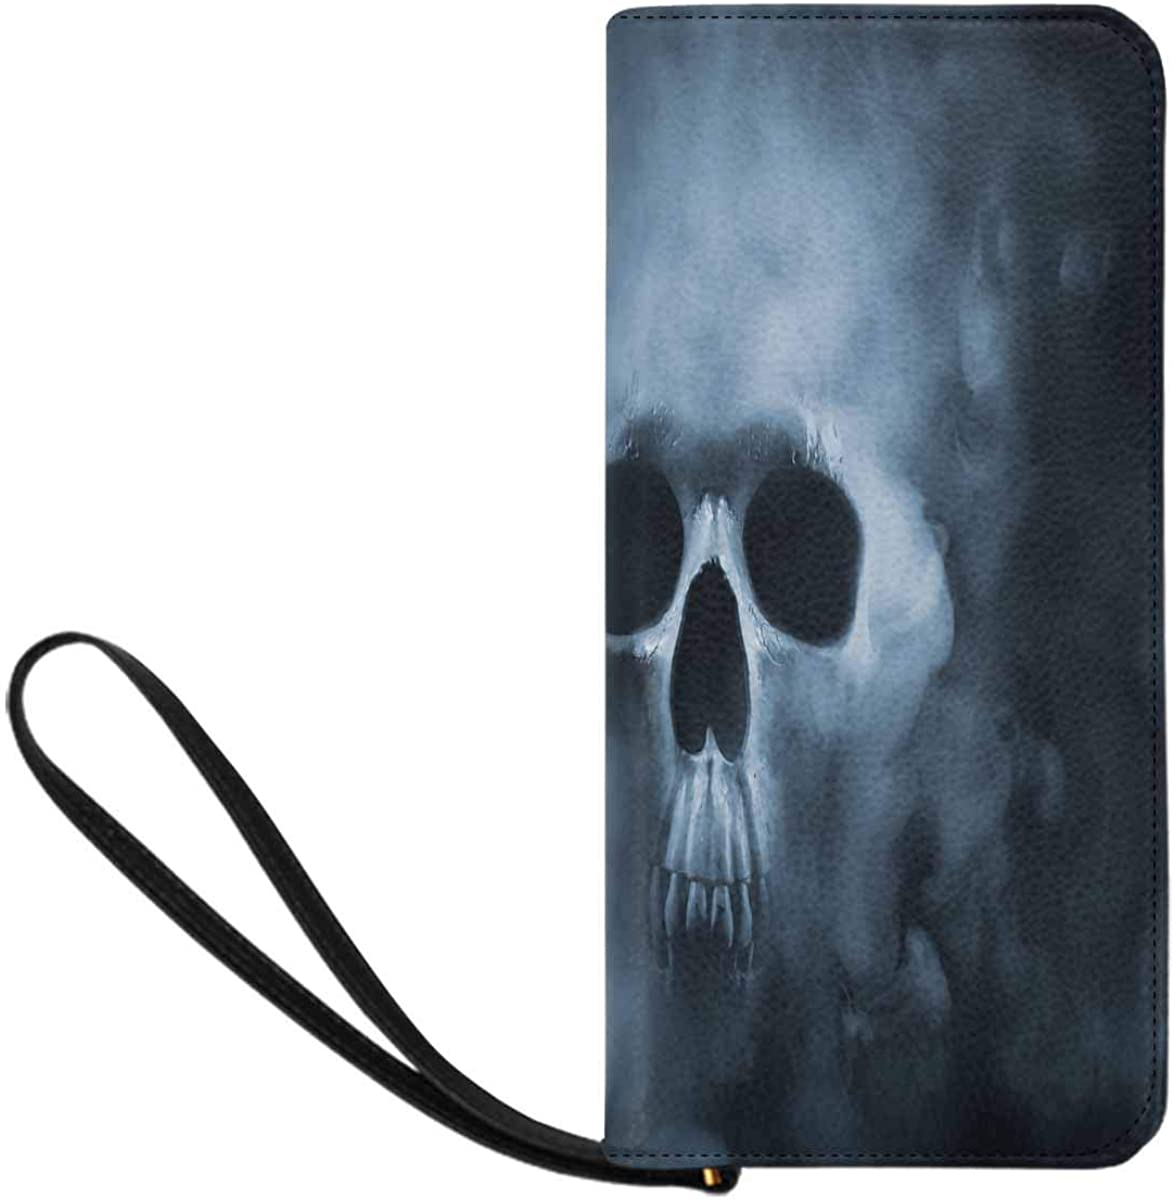 INTERESTPRINT Branded goods Scary Skull San Francisco Mall Emerging From Smoke Wristle a Cloud of